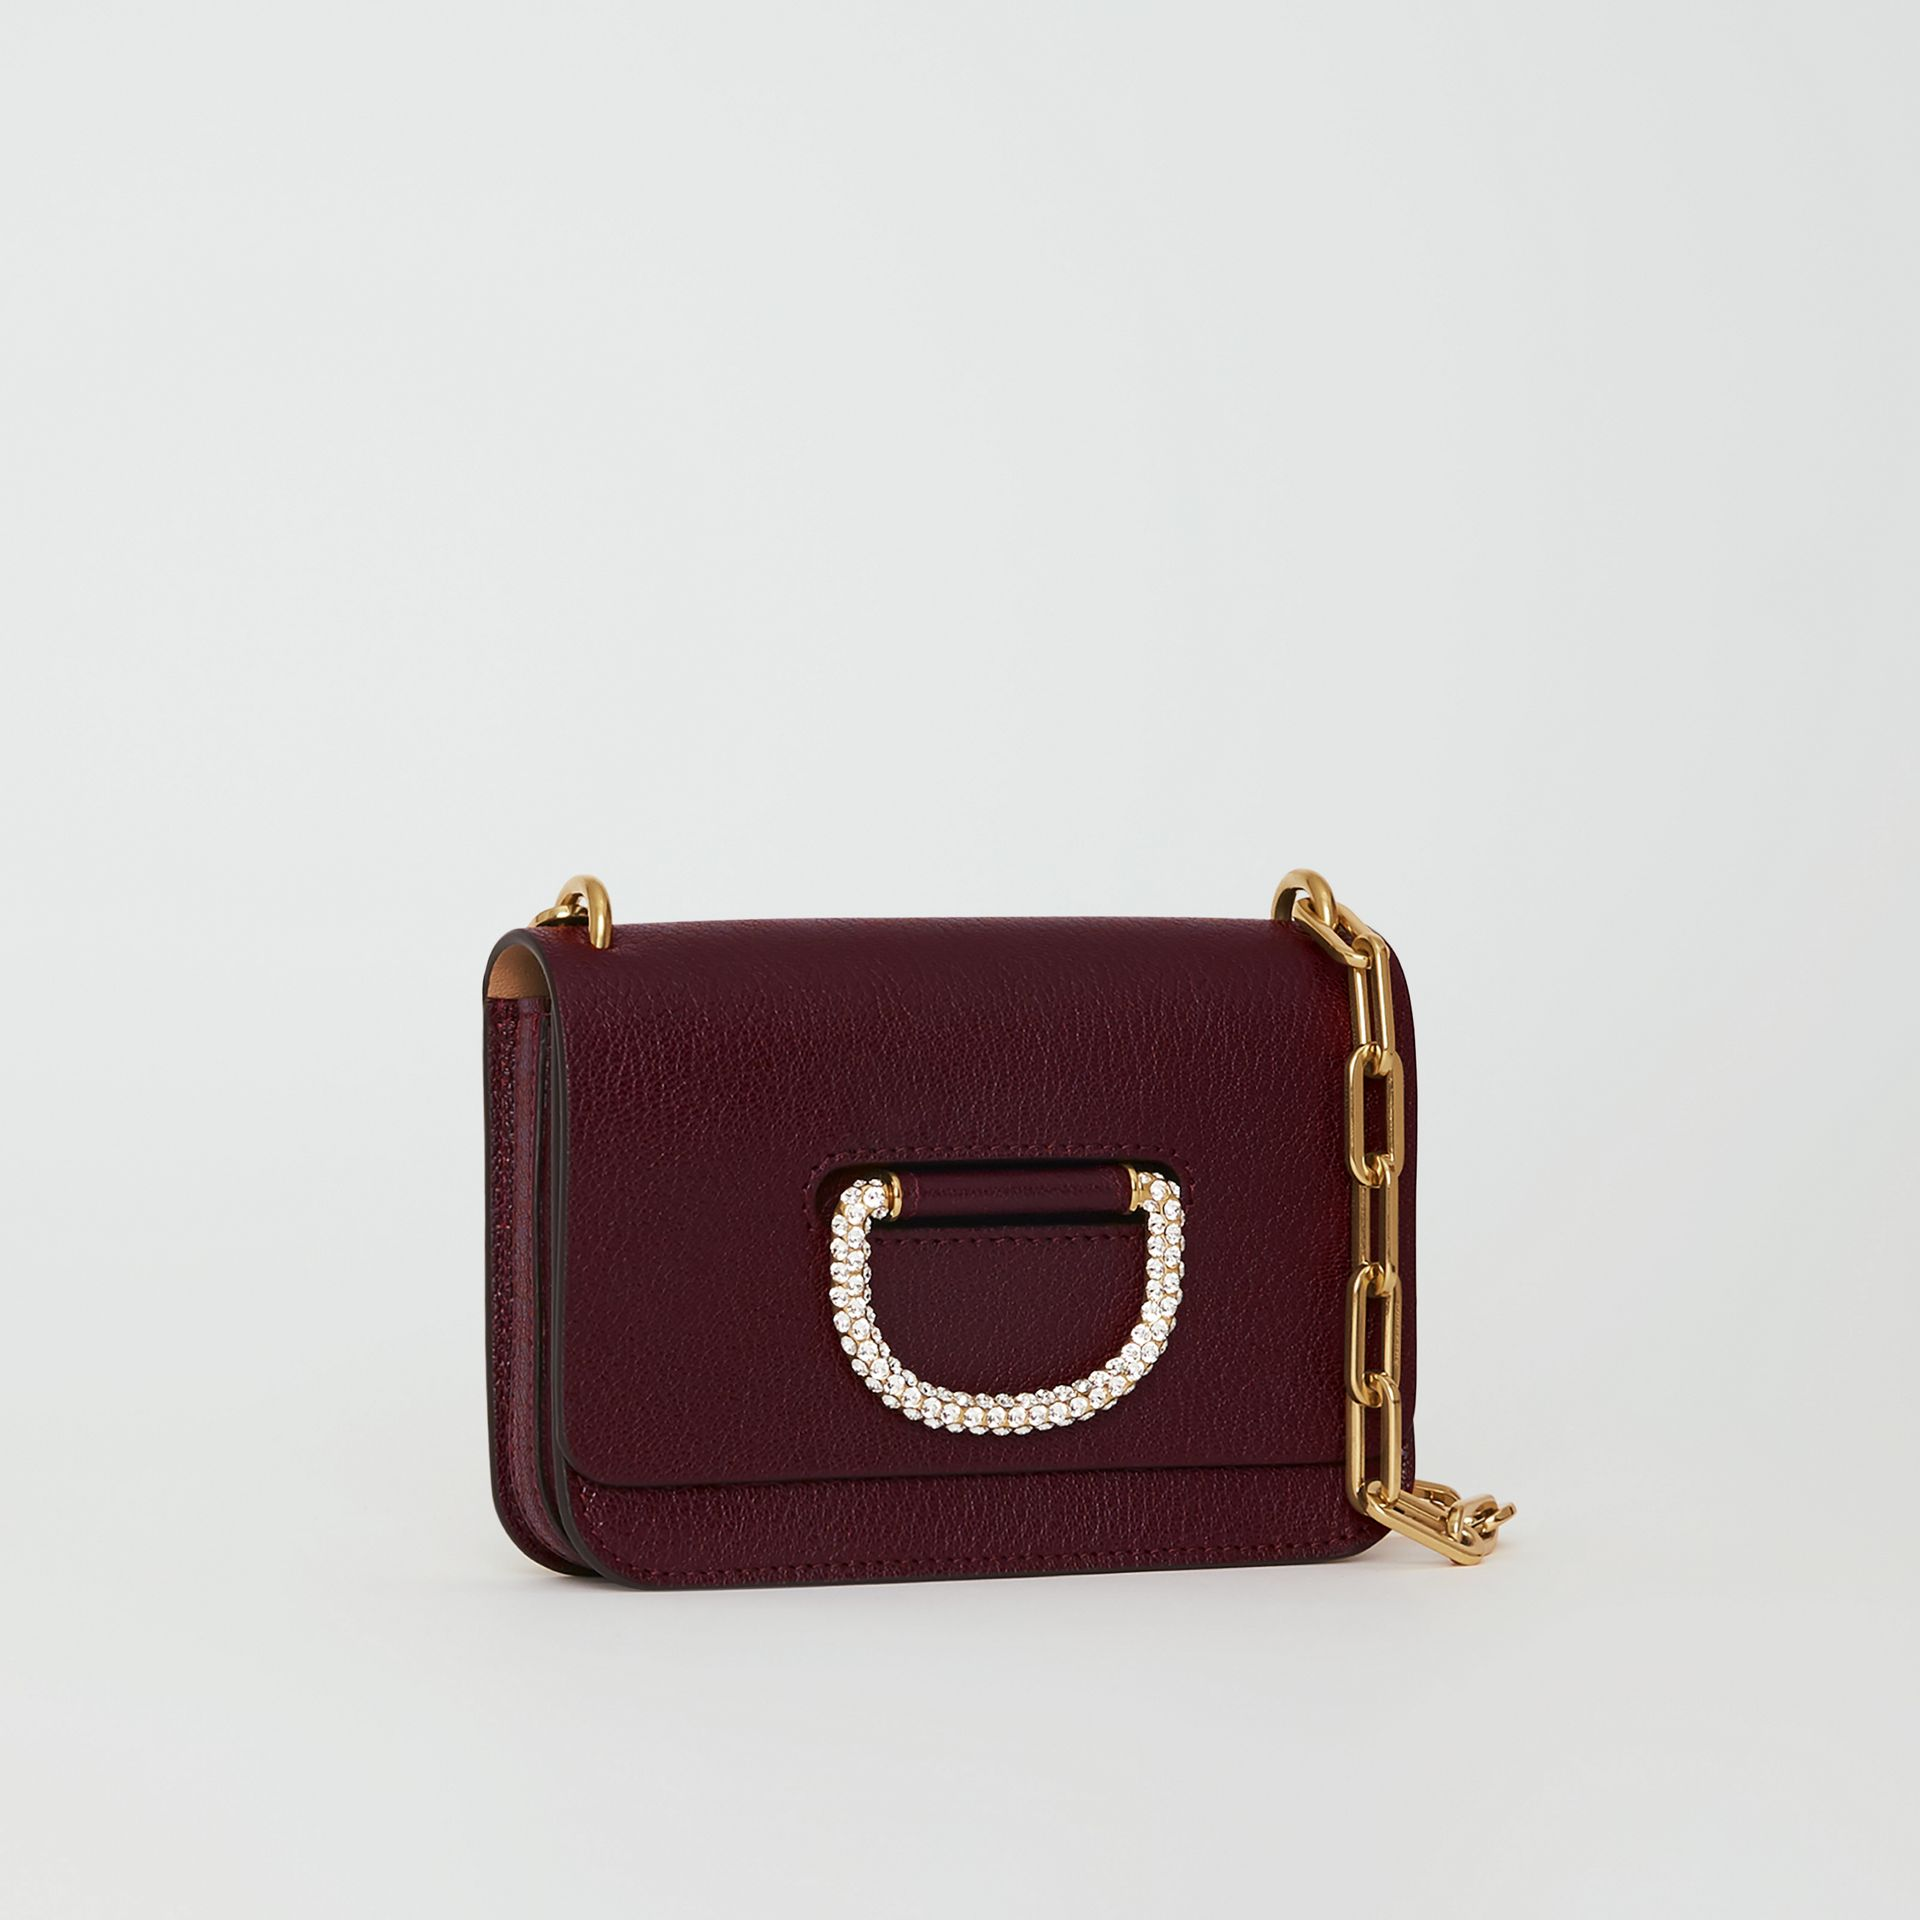 Borsa The D-ring mini in pelle con cristalli (Rosso Violetto Intenso) - Donna | Burberry - immagine della galleria 4